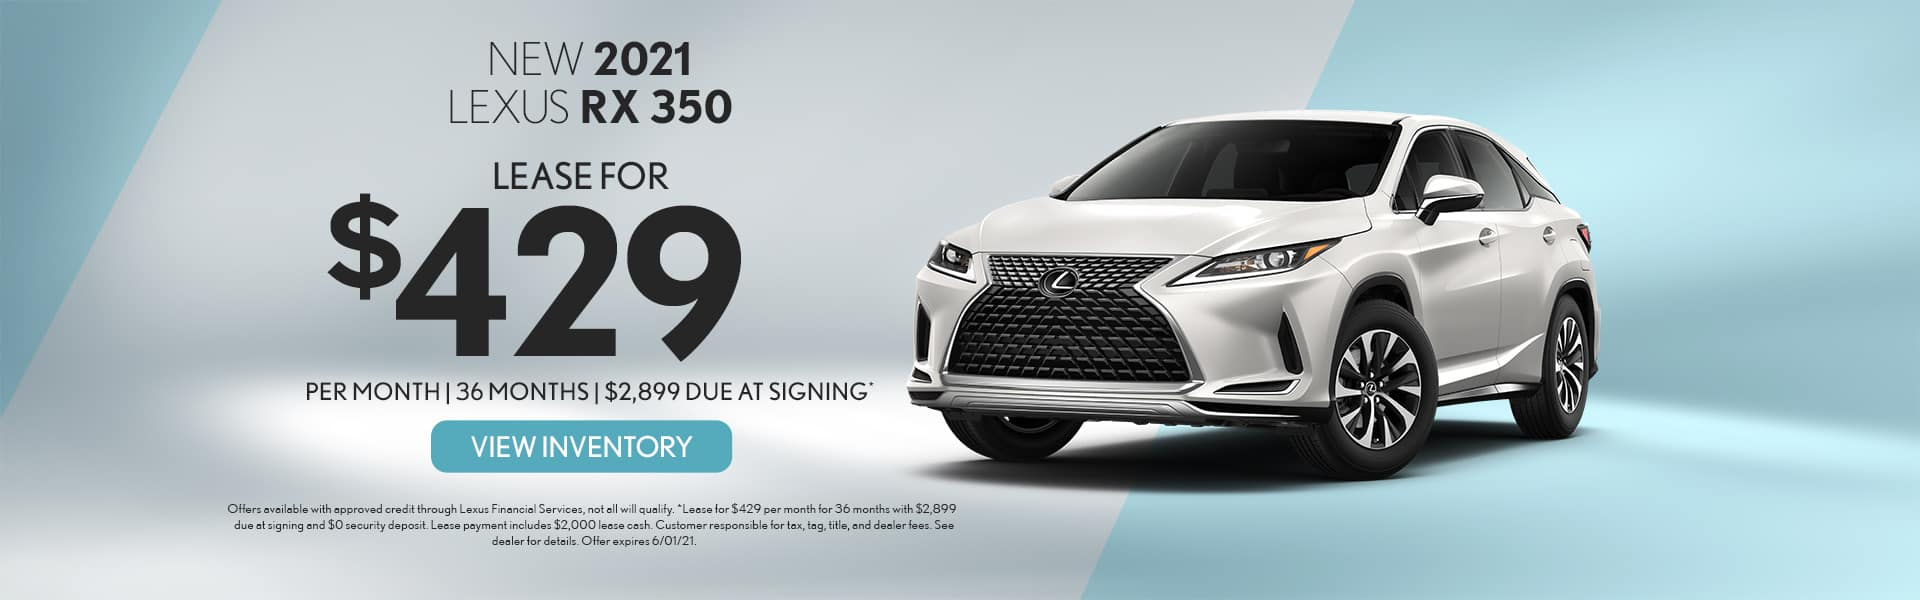 2021 Lexus RX350 for lease in Mobile, AL